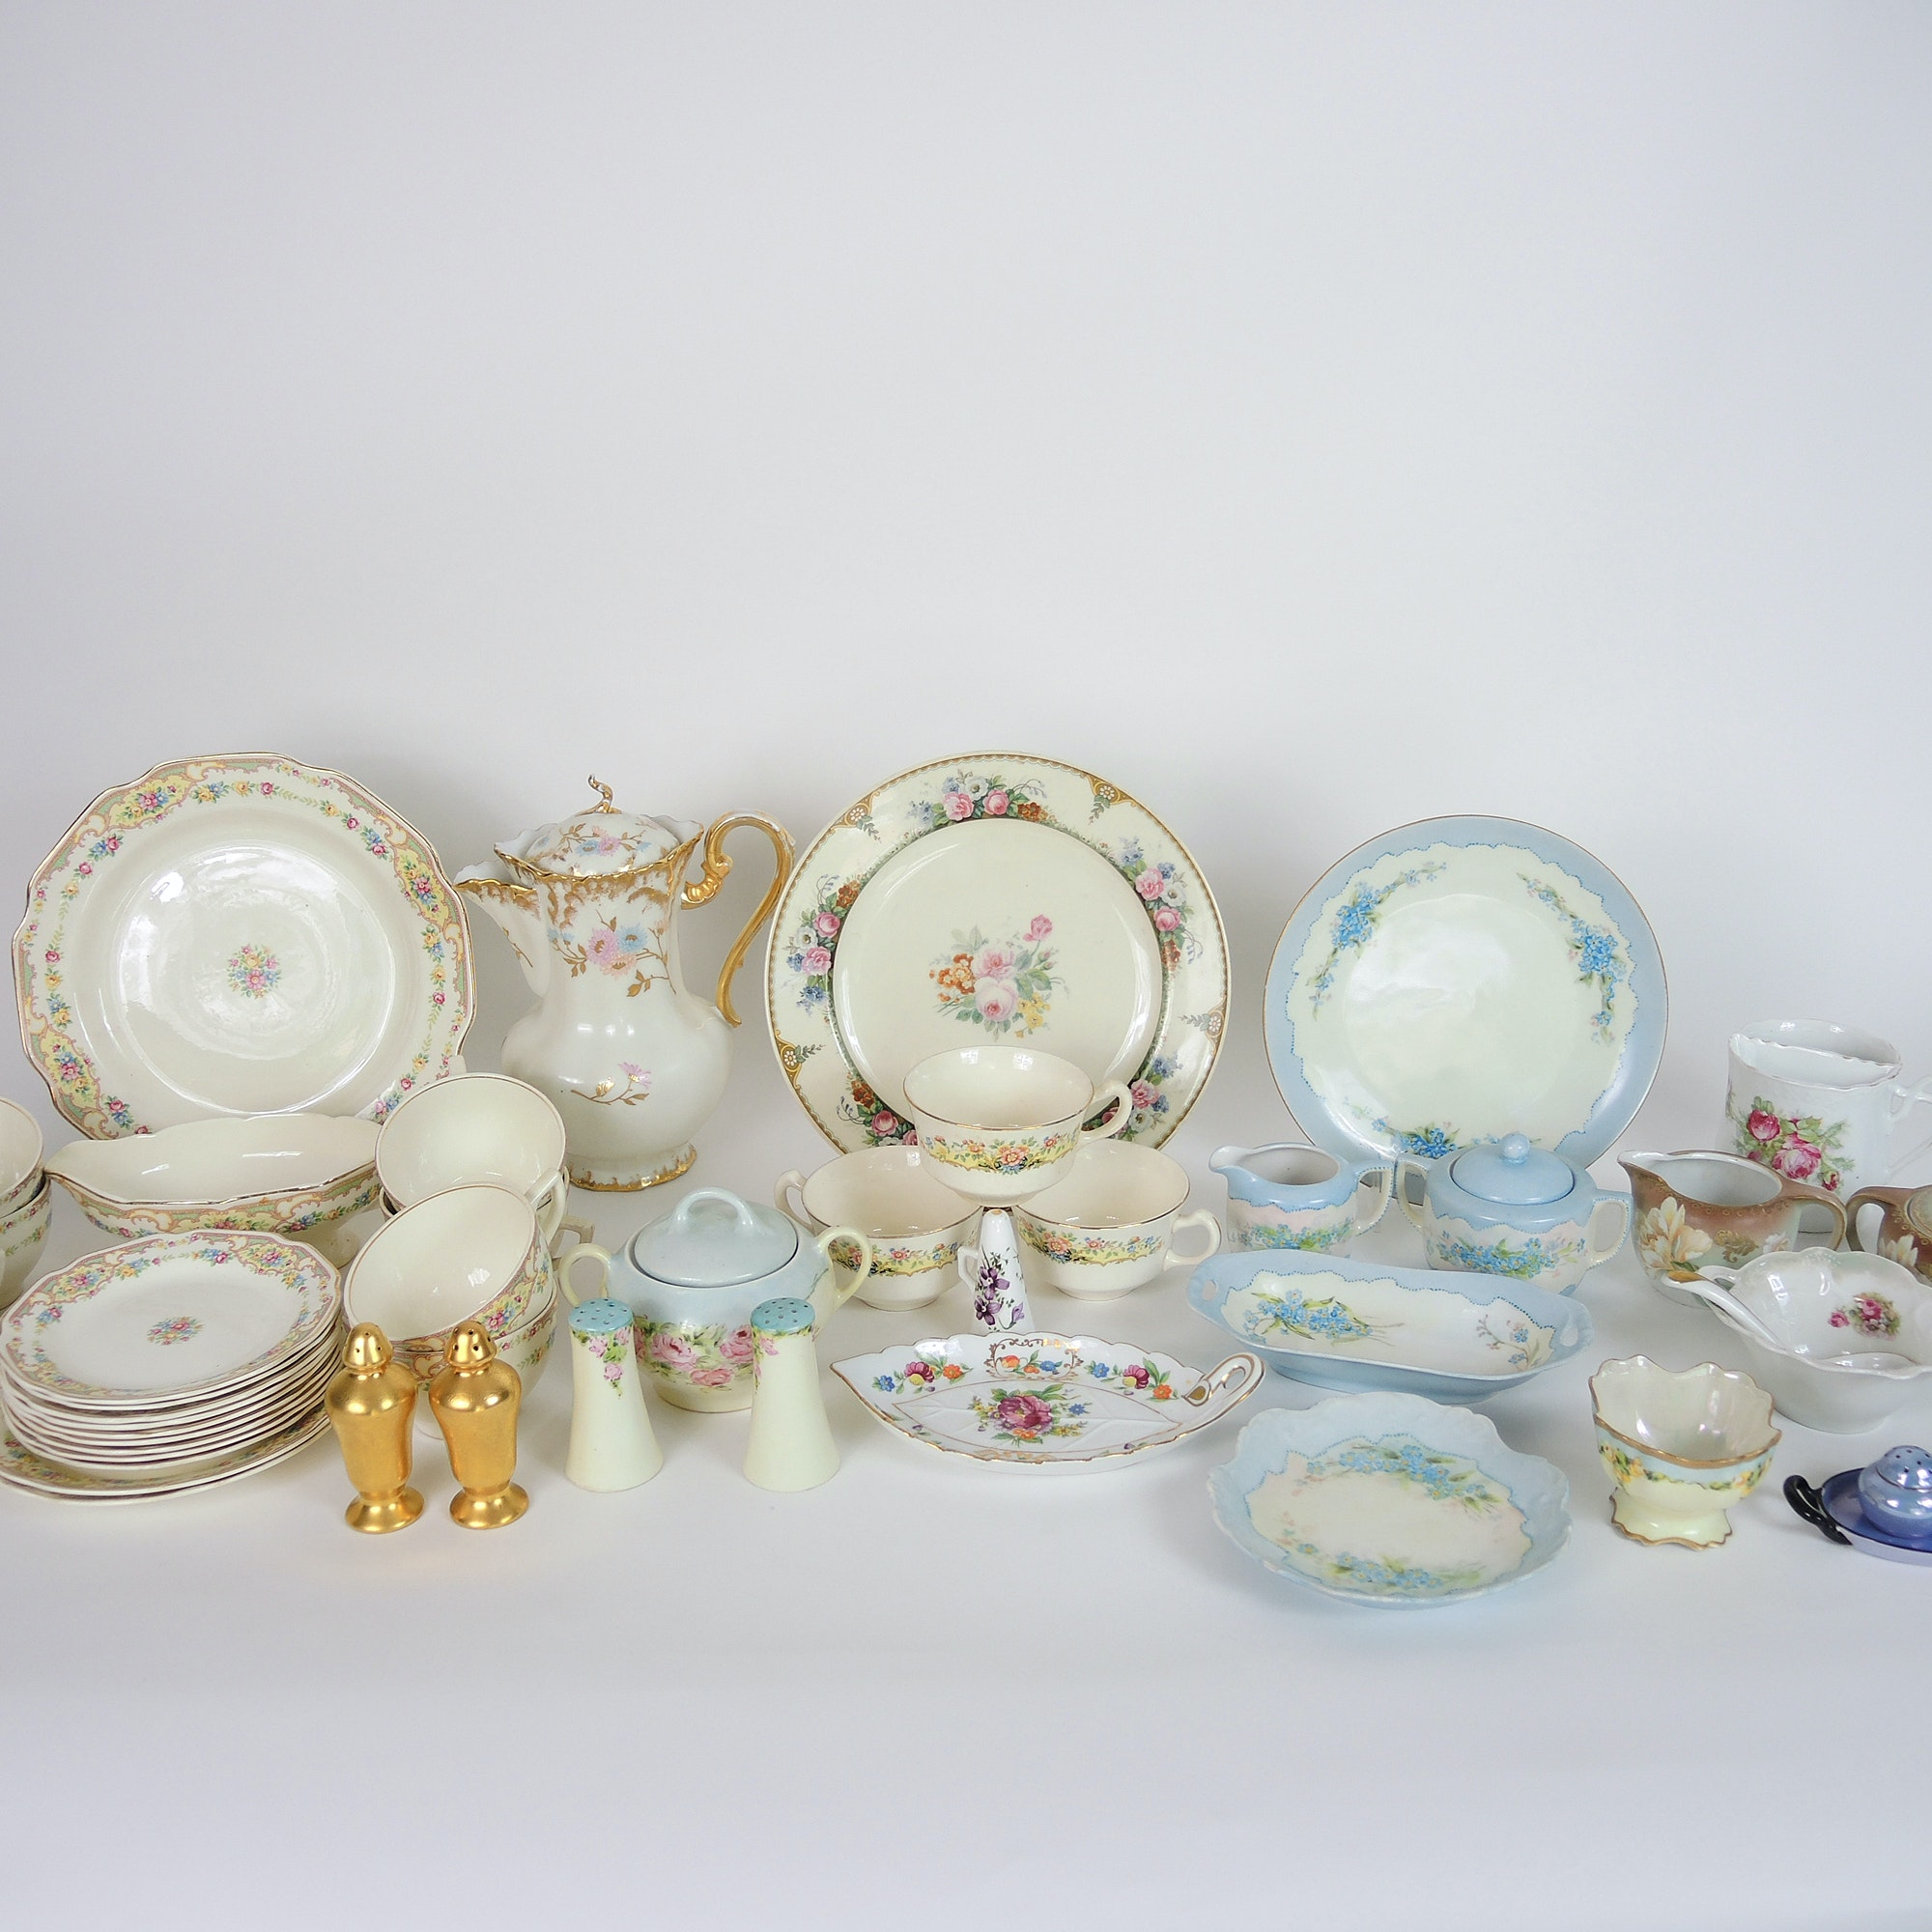 Vintage Hand Painted China Tableware Including Limoges : EBTH